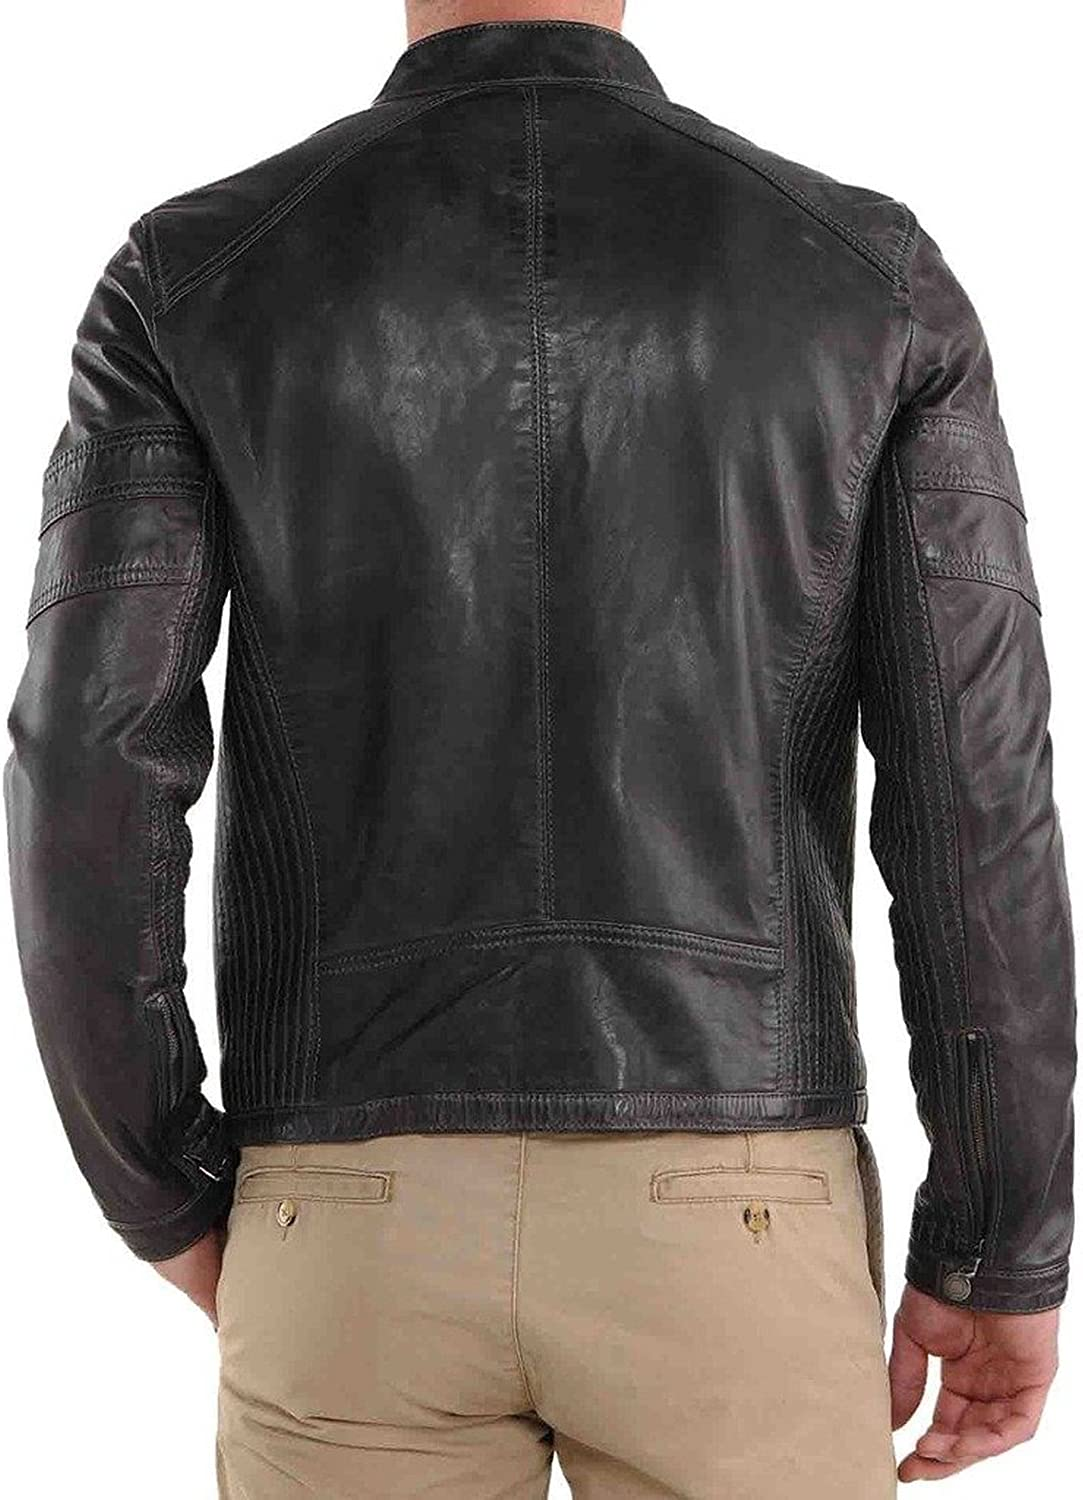 Kingdom Leather New Mens Genuine Cow Leather Slim Fit Biker Motorcycle Jacket for Men XC486